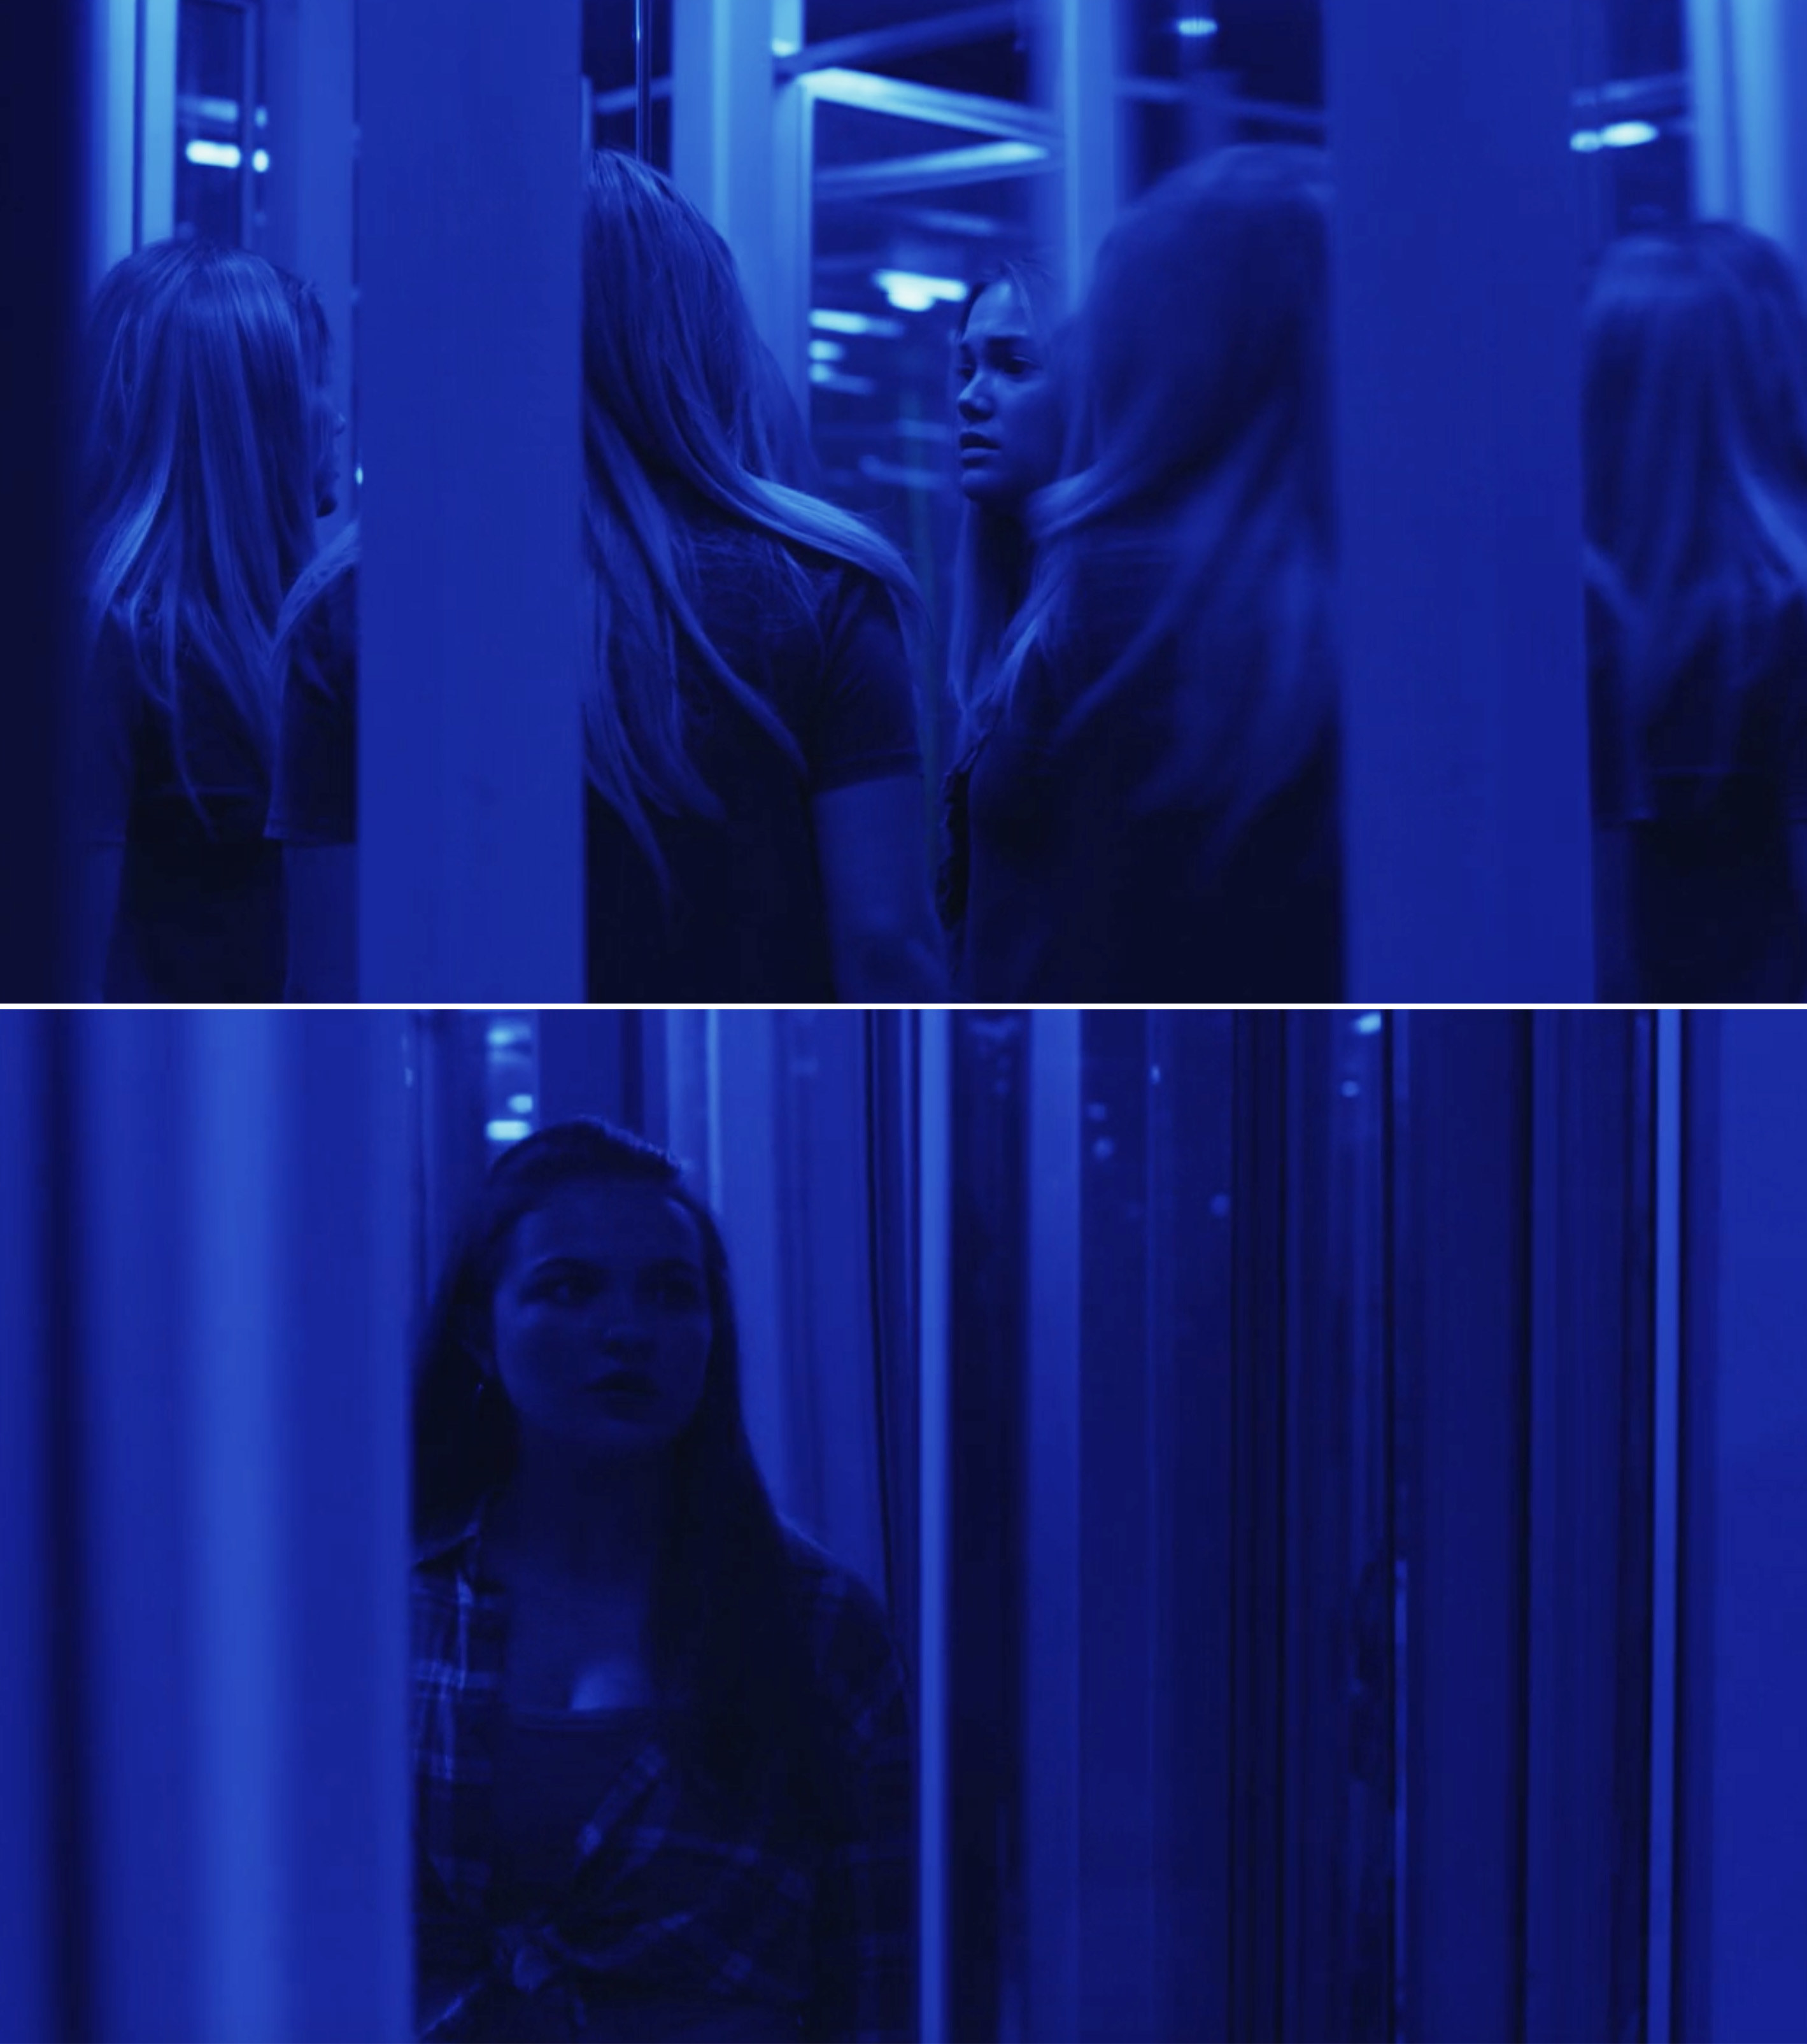 Beth and Jeanette walking through a funhouse with mirrors